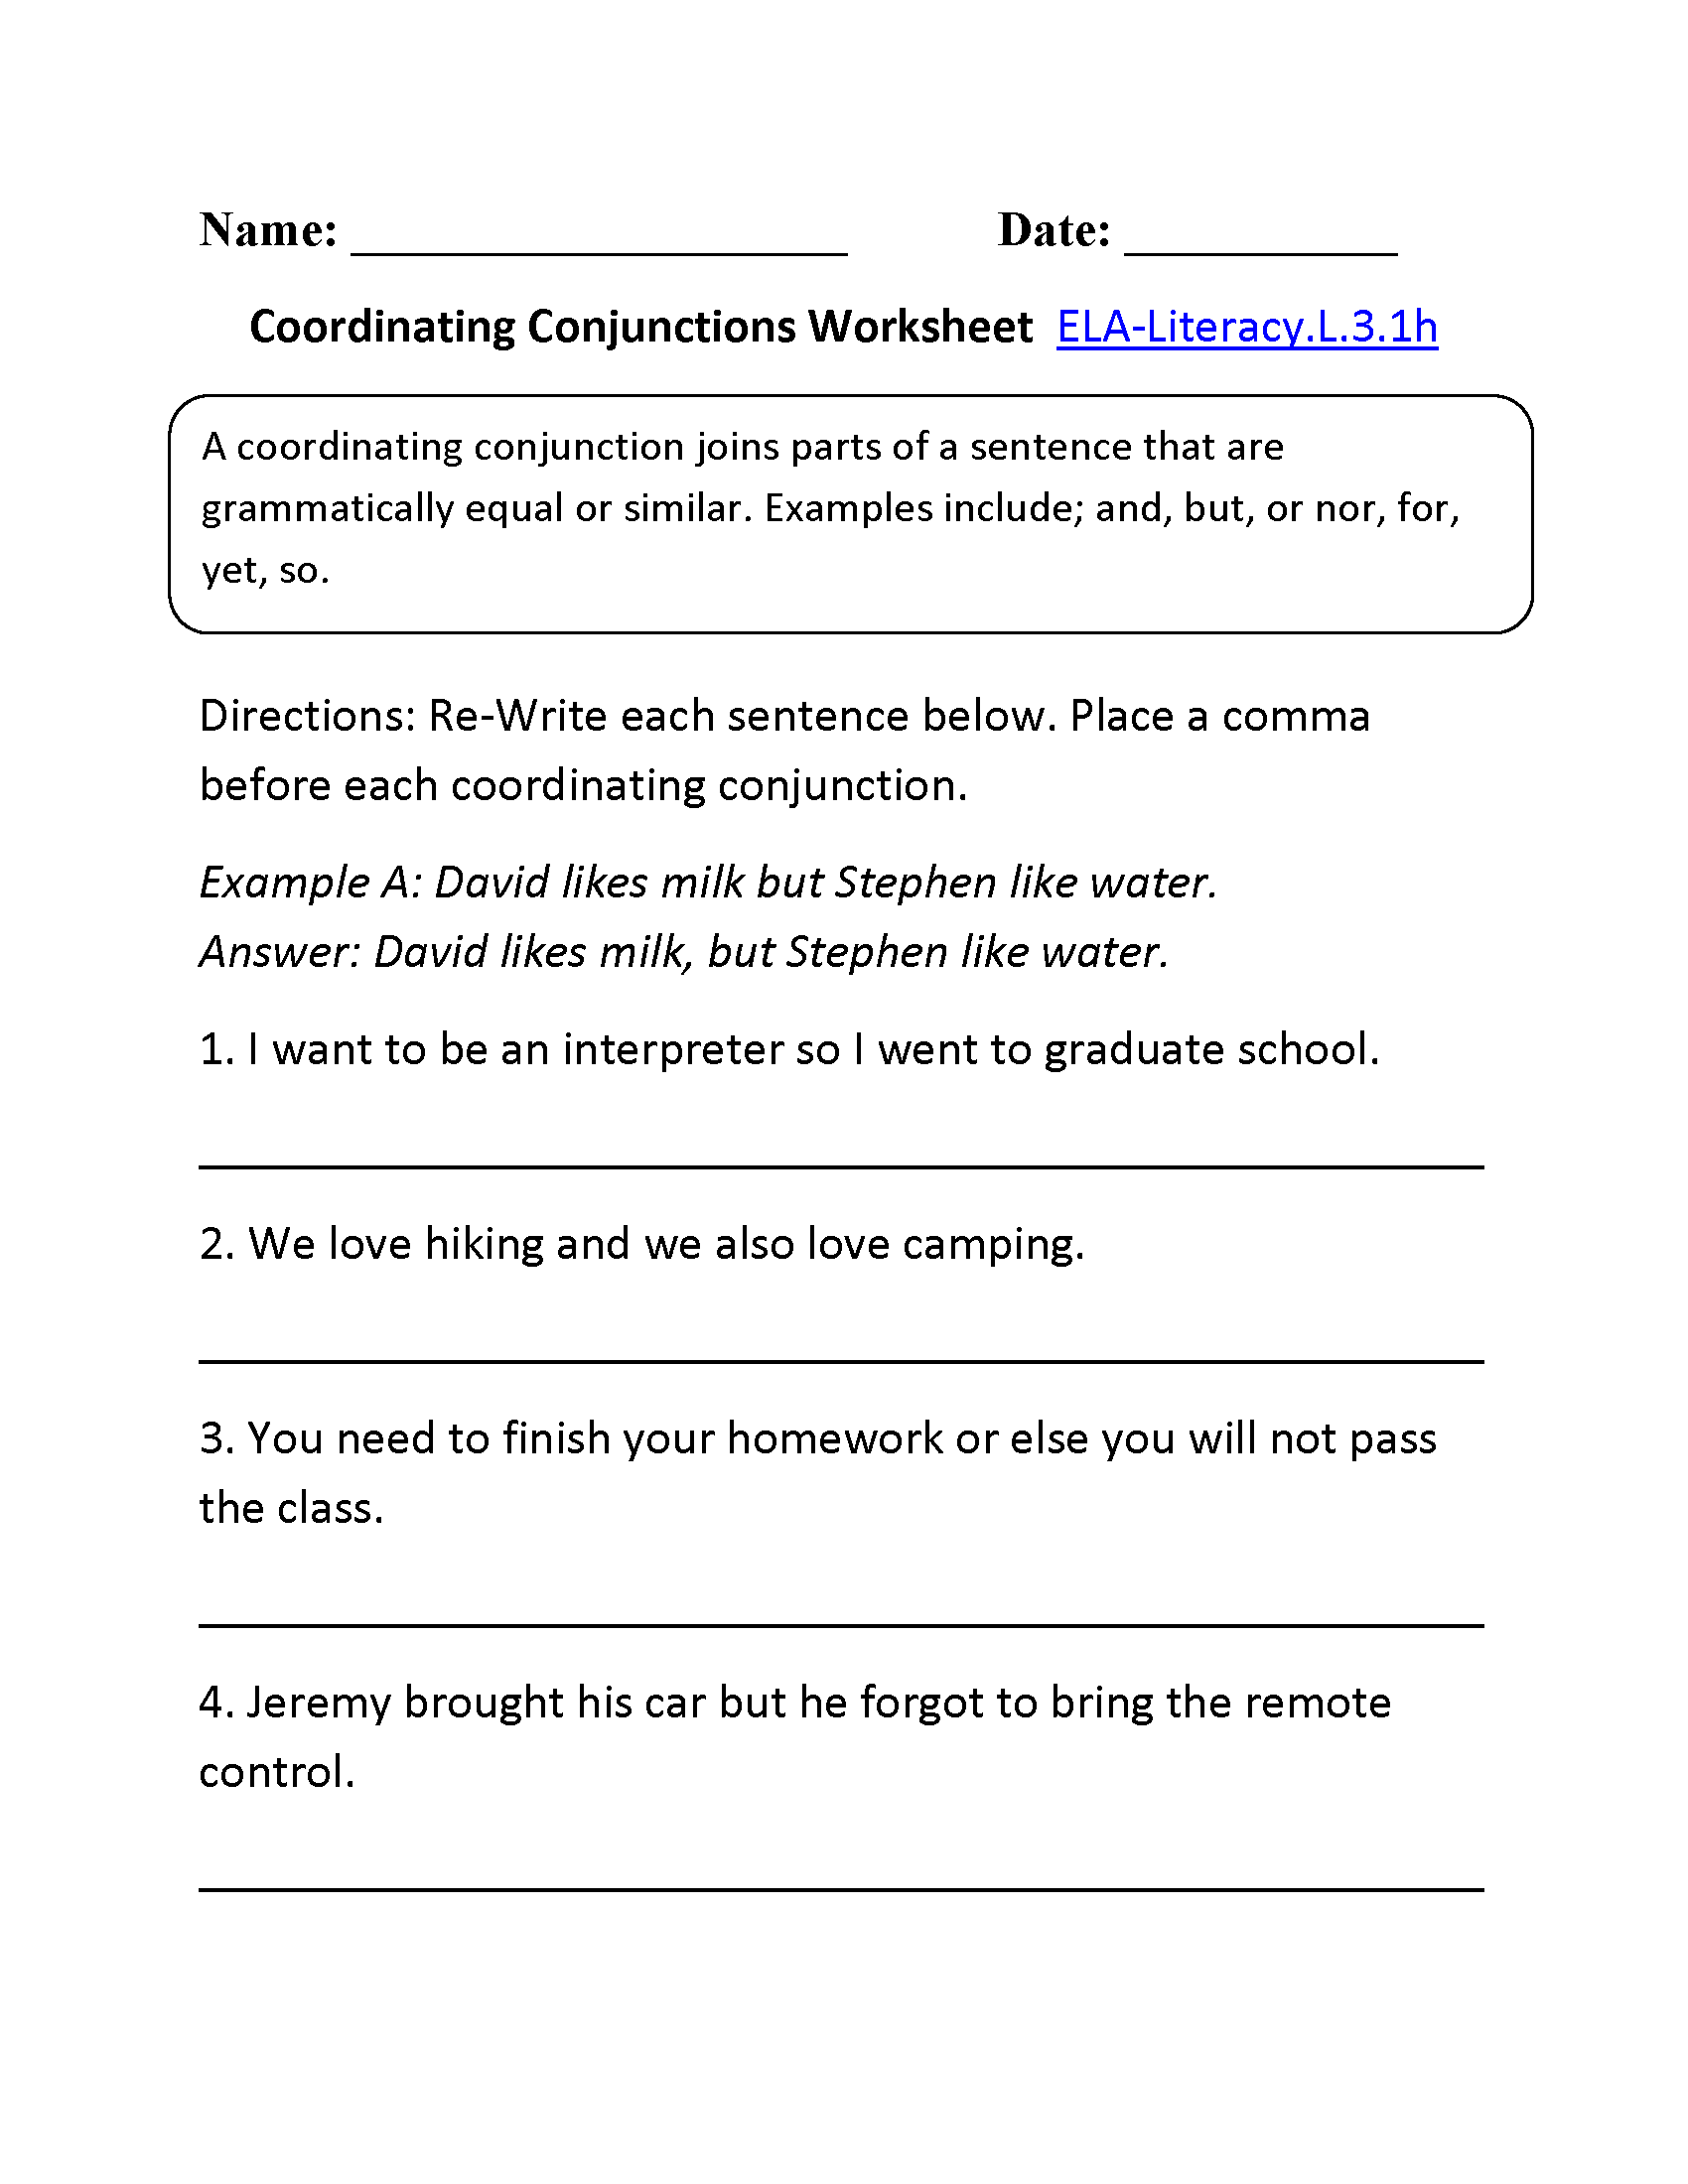 Worksheets Inferences Worksheet 1 coordinating conjunctions worksheet 1 l 3 pinterest 1